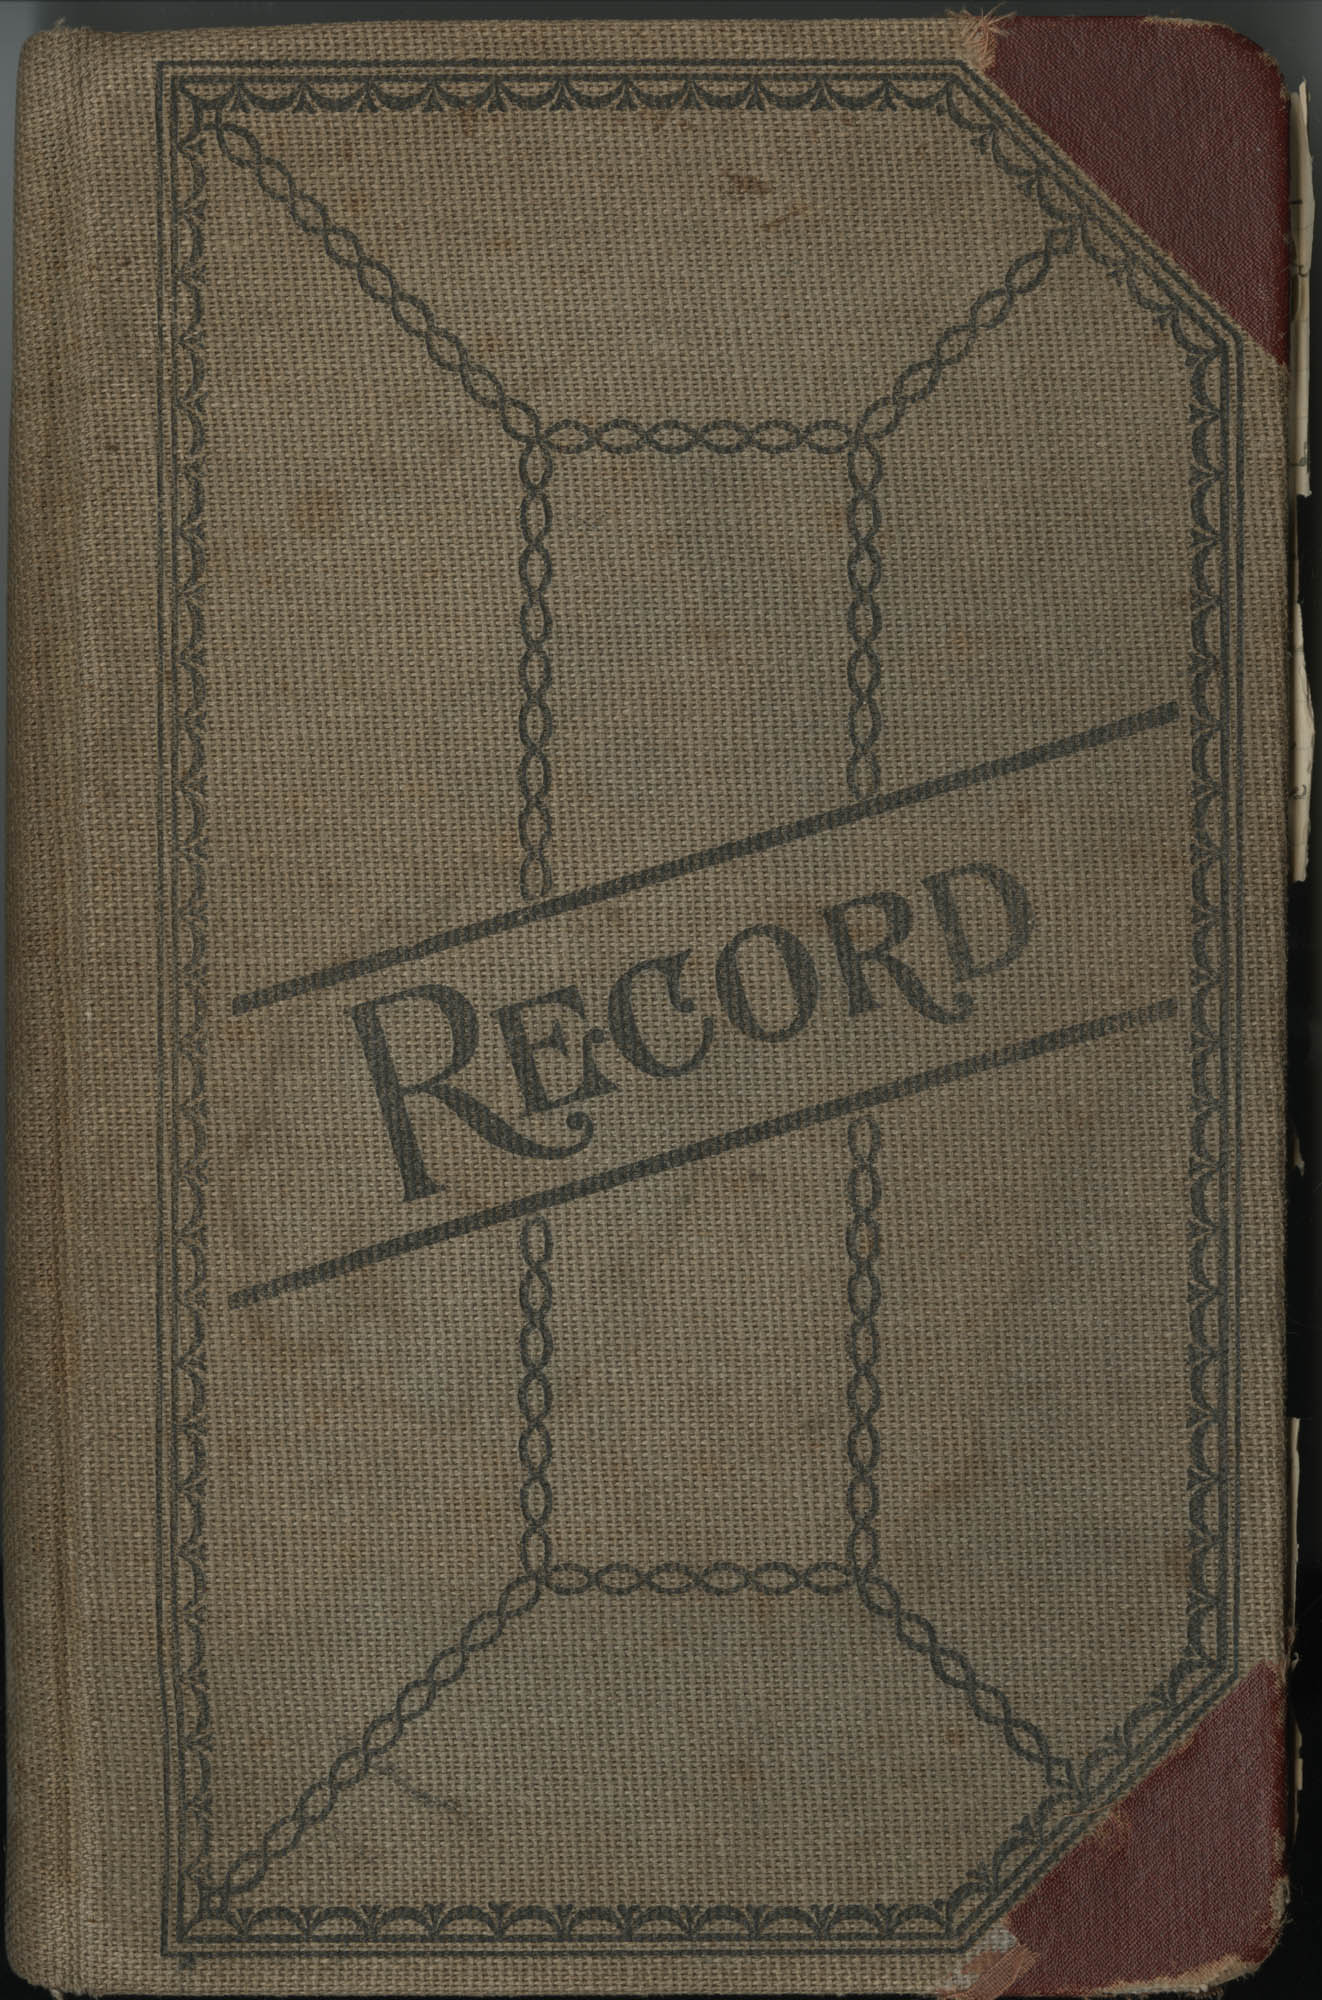 Minutes, Book Lovers' Club, 1944-1958, Front Cover Exterior